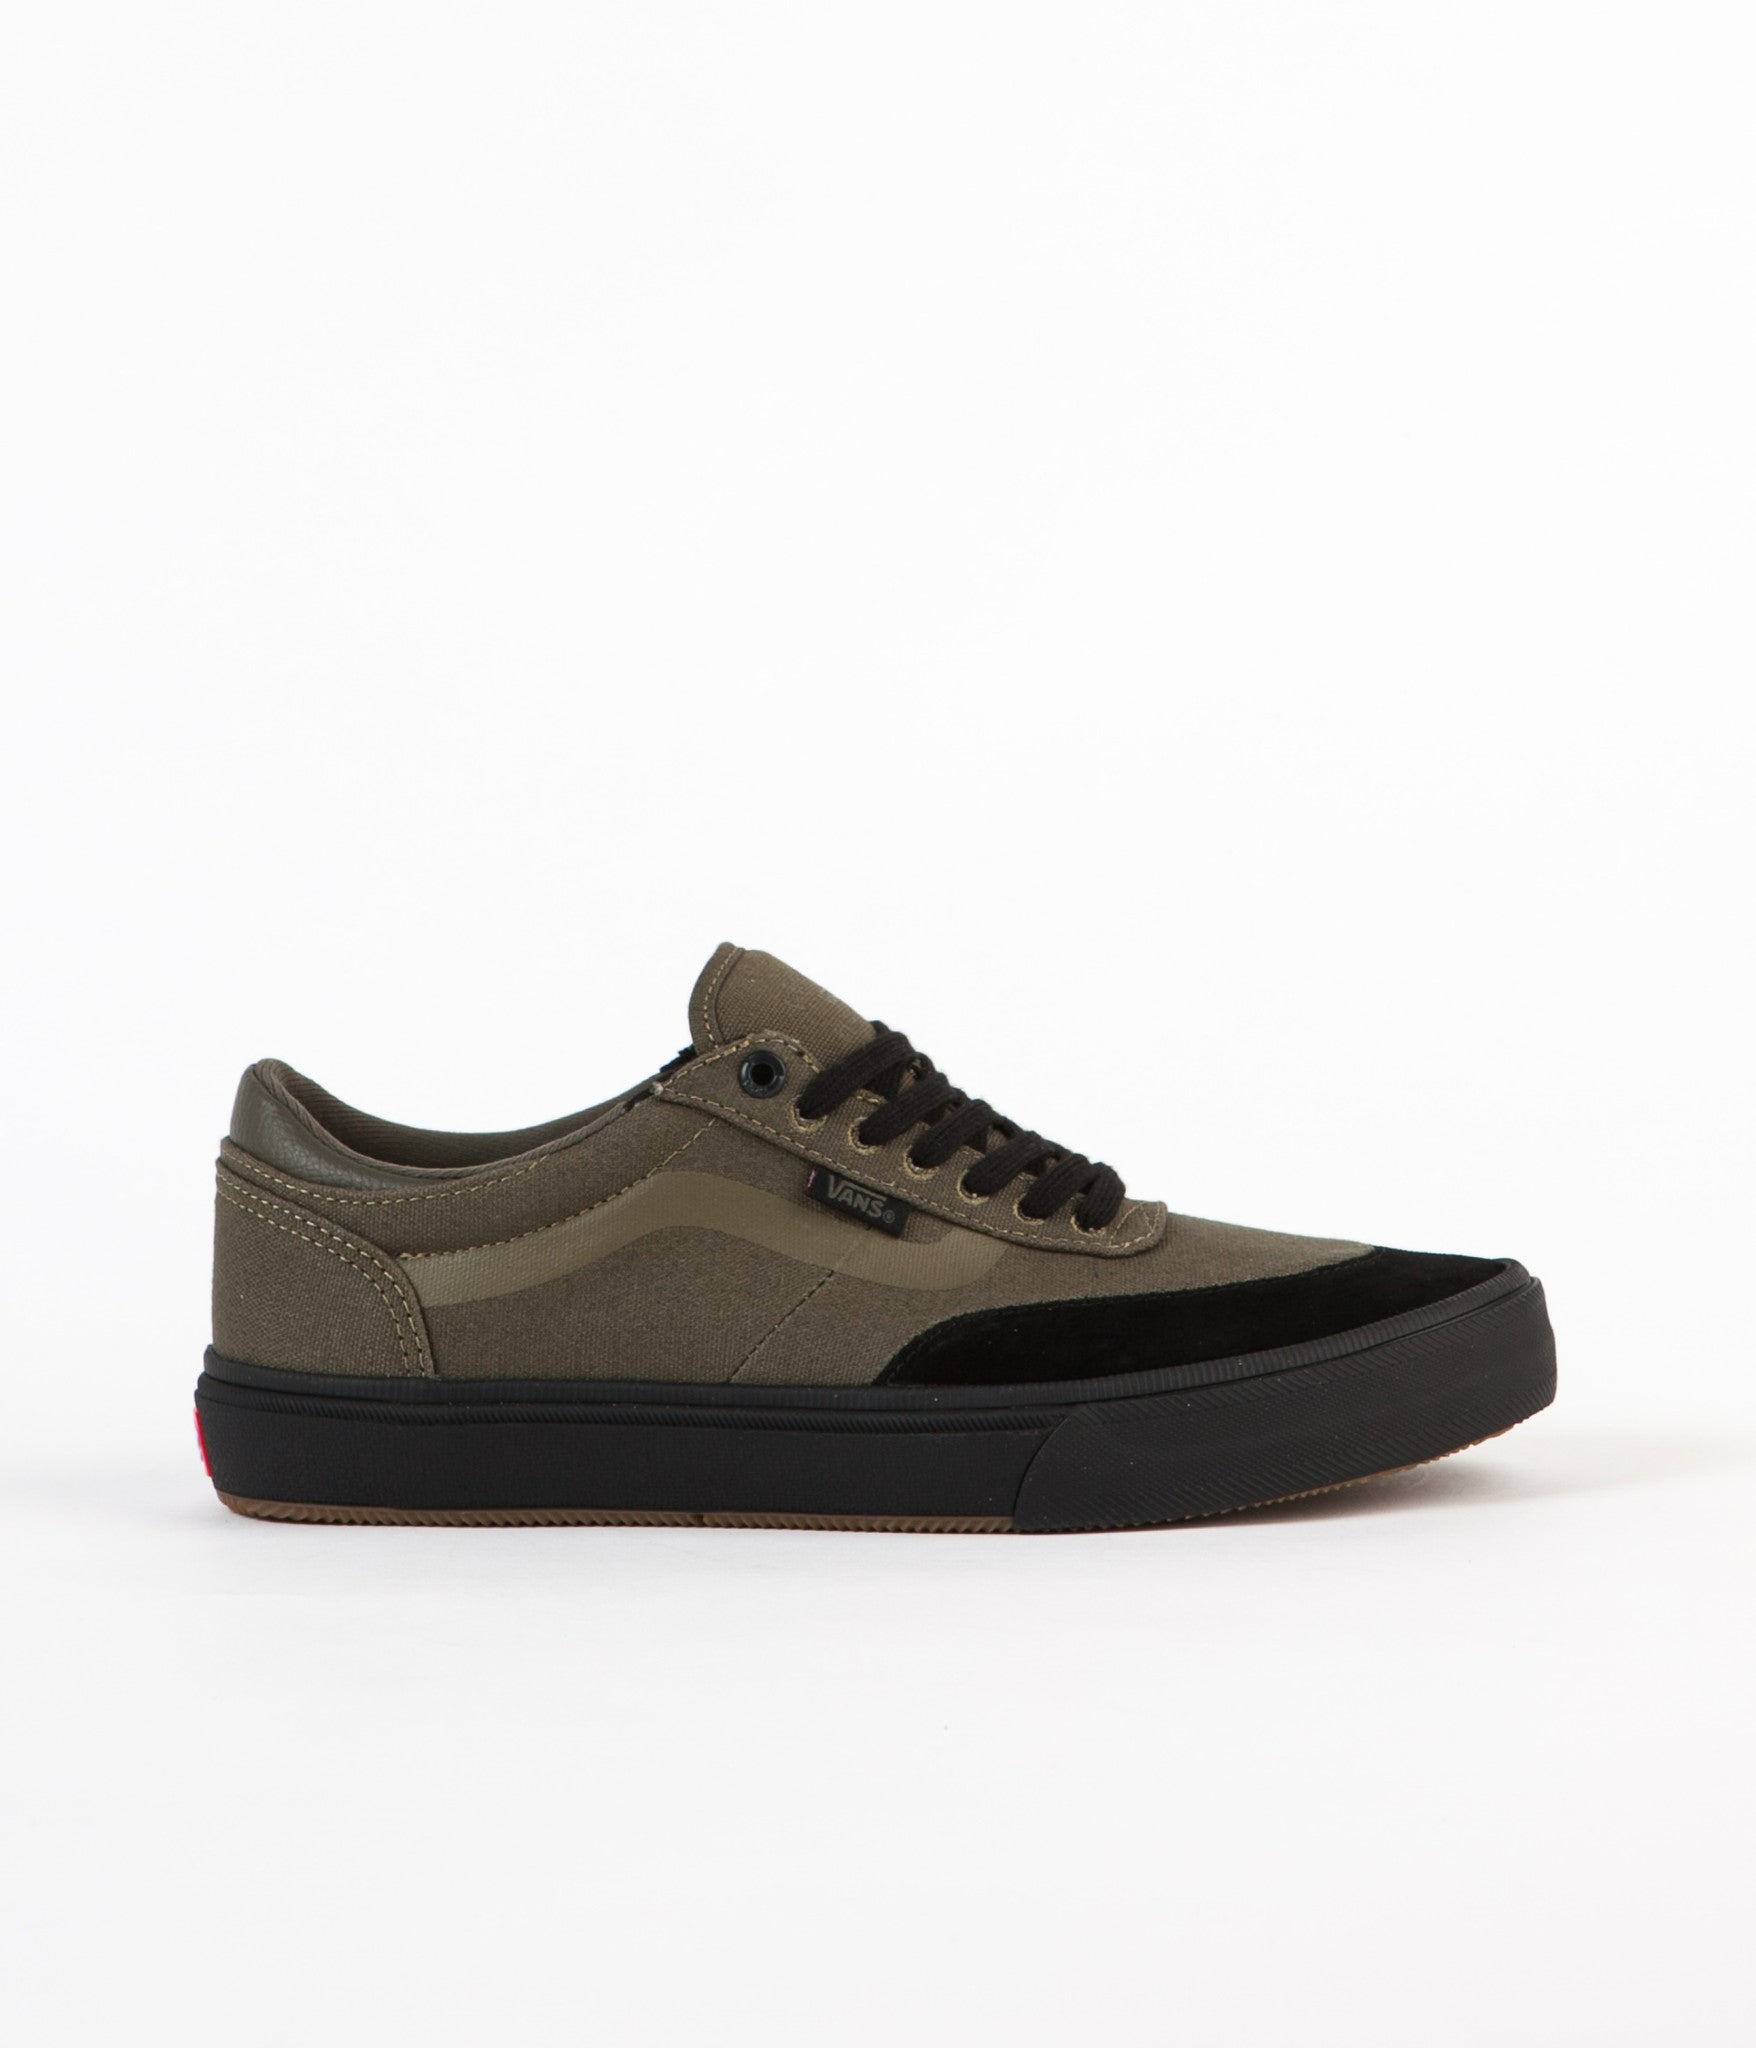 120098e87b Vans Gilbert Crockett 2 Pro Shoes - Ivy Green   Black